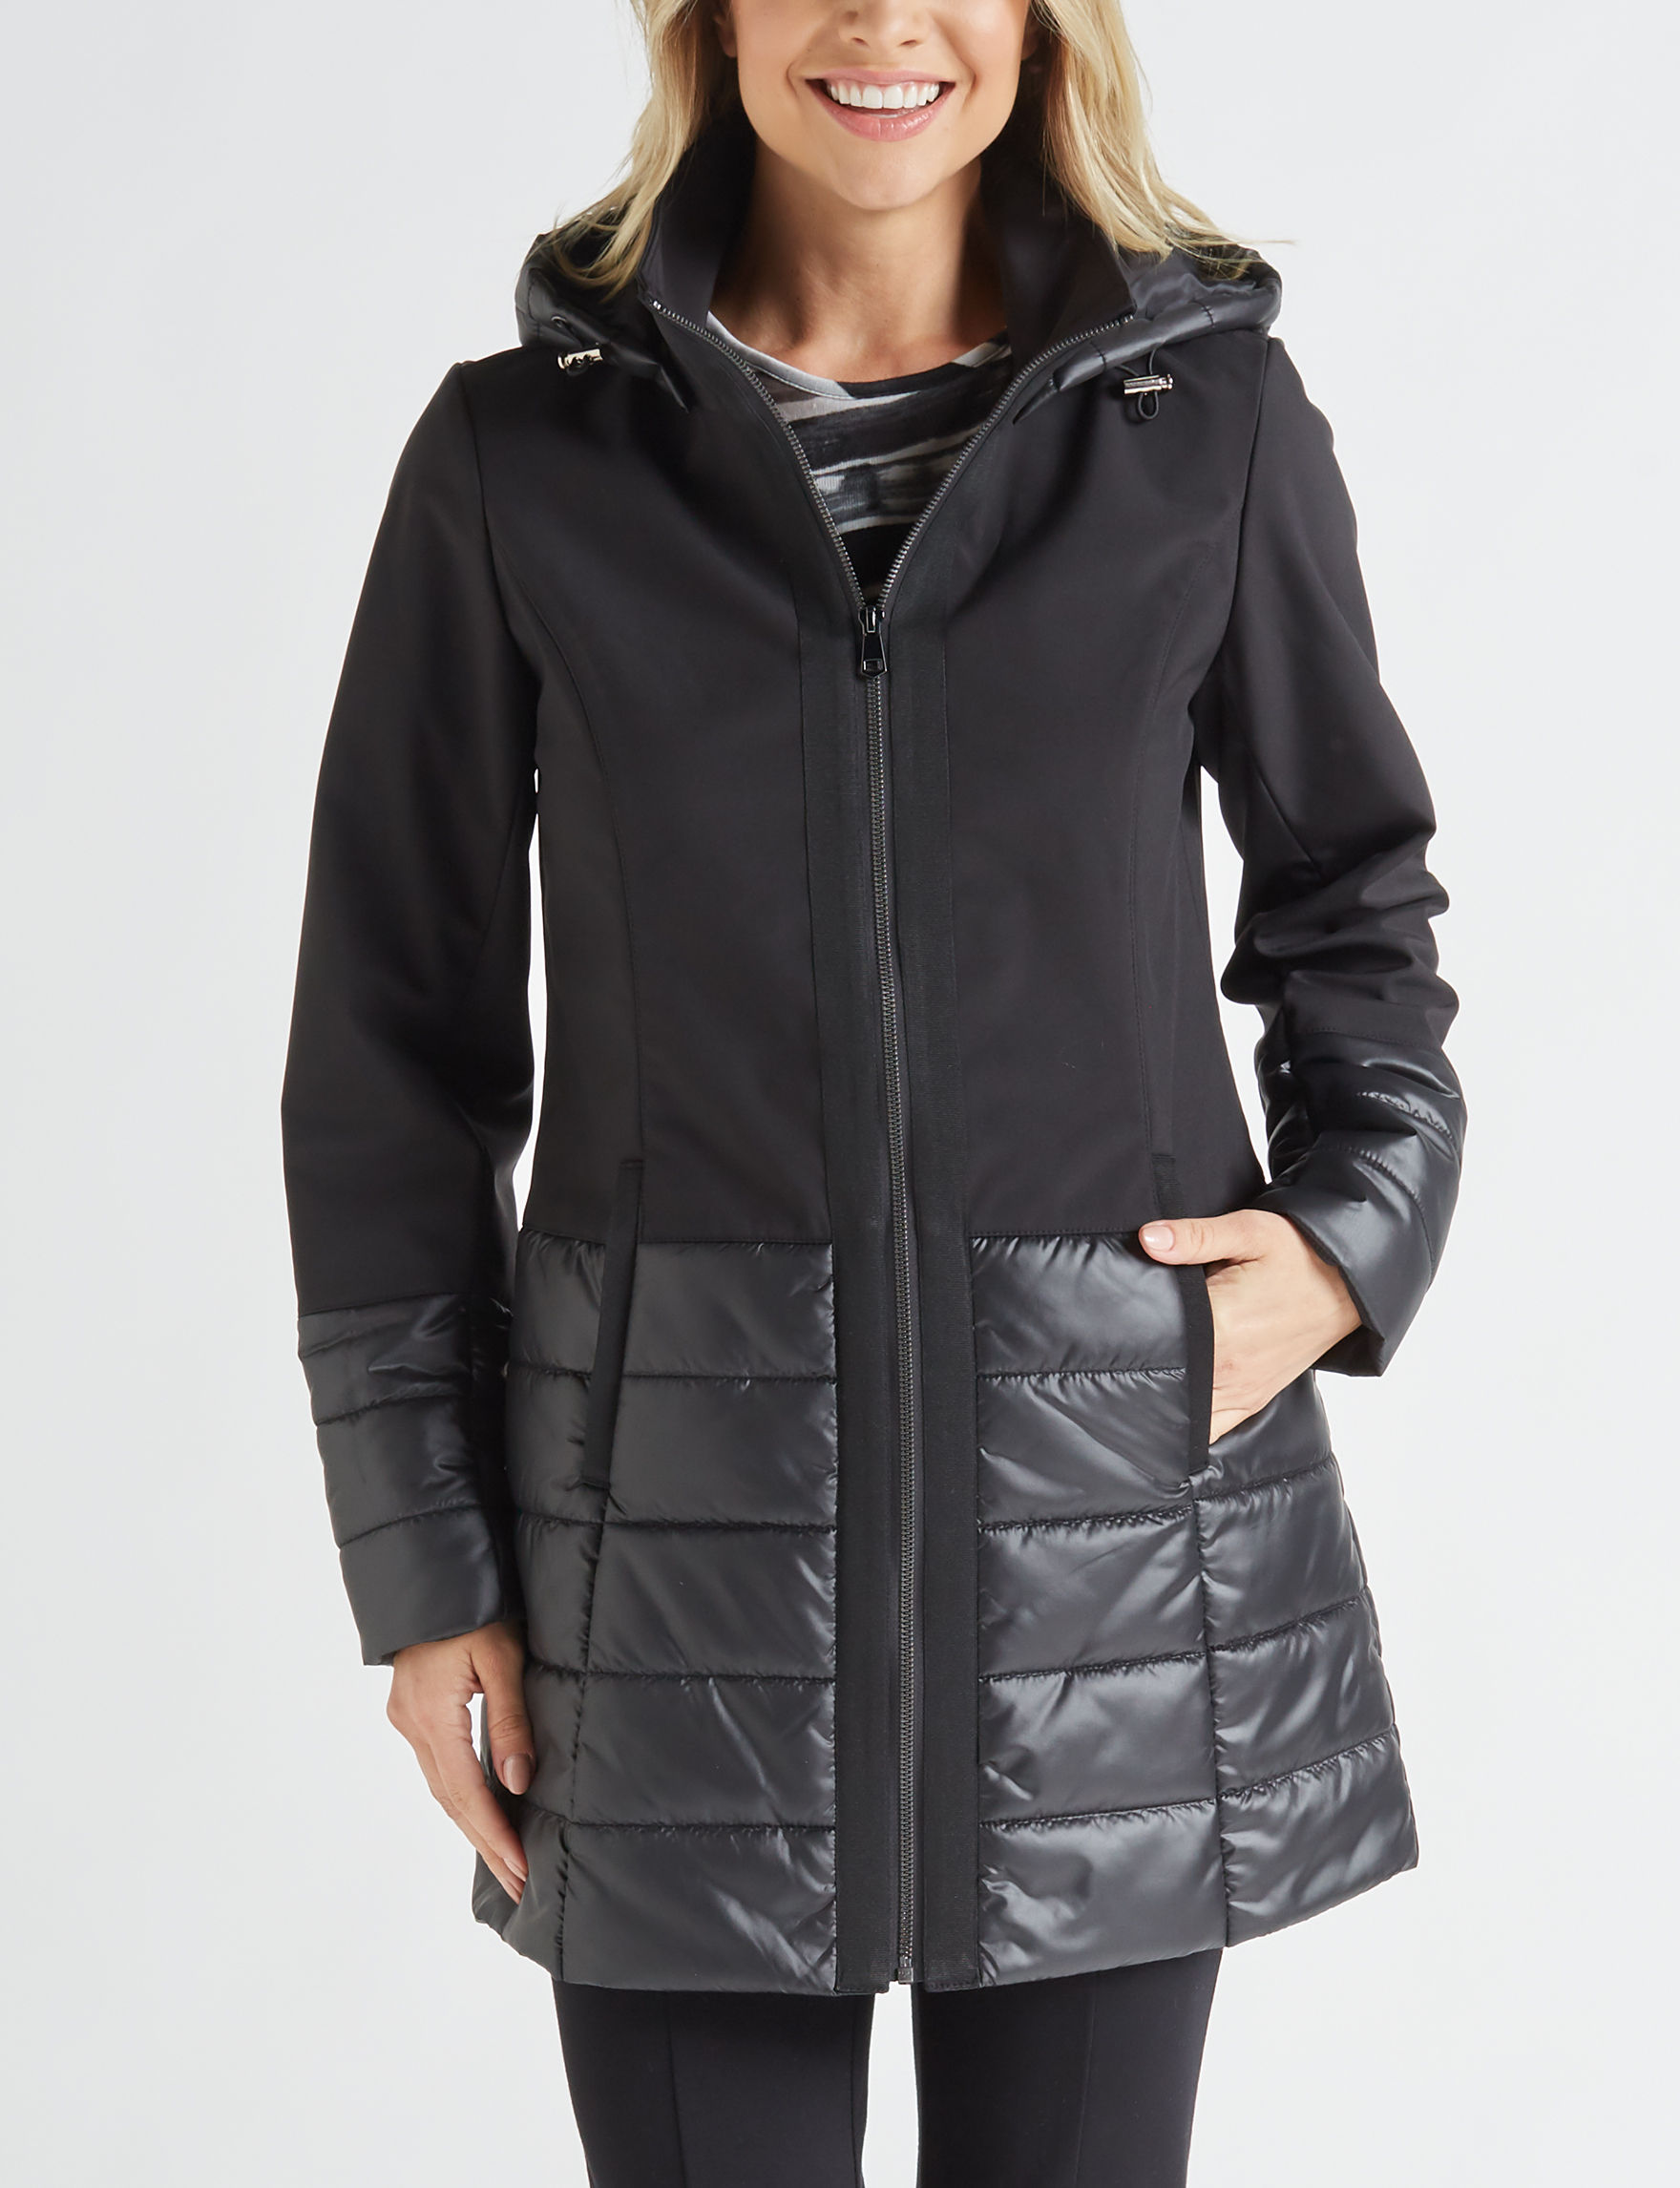 Sebby Collection Black Fleece & Soft Shell Jackets